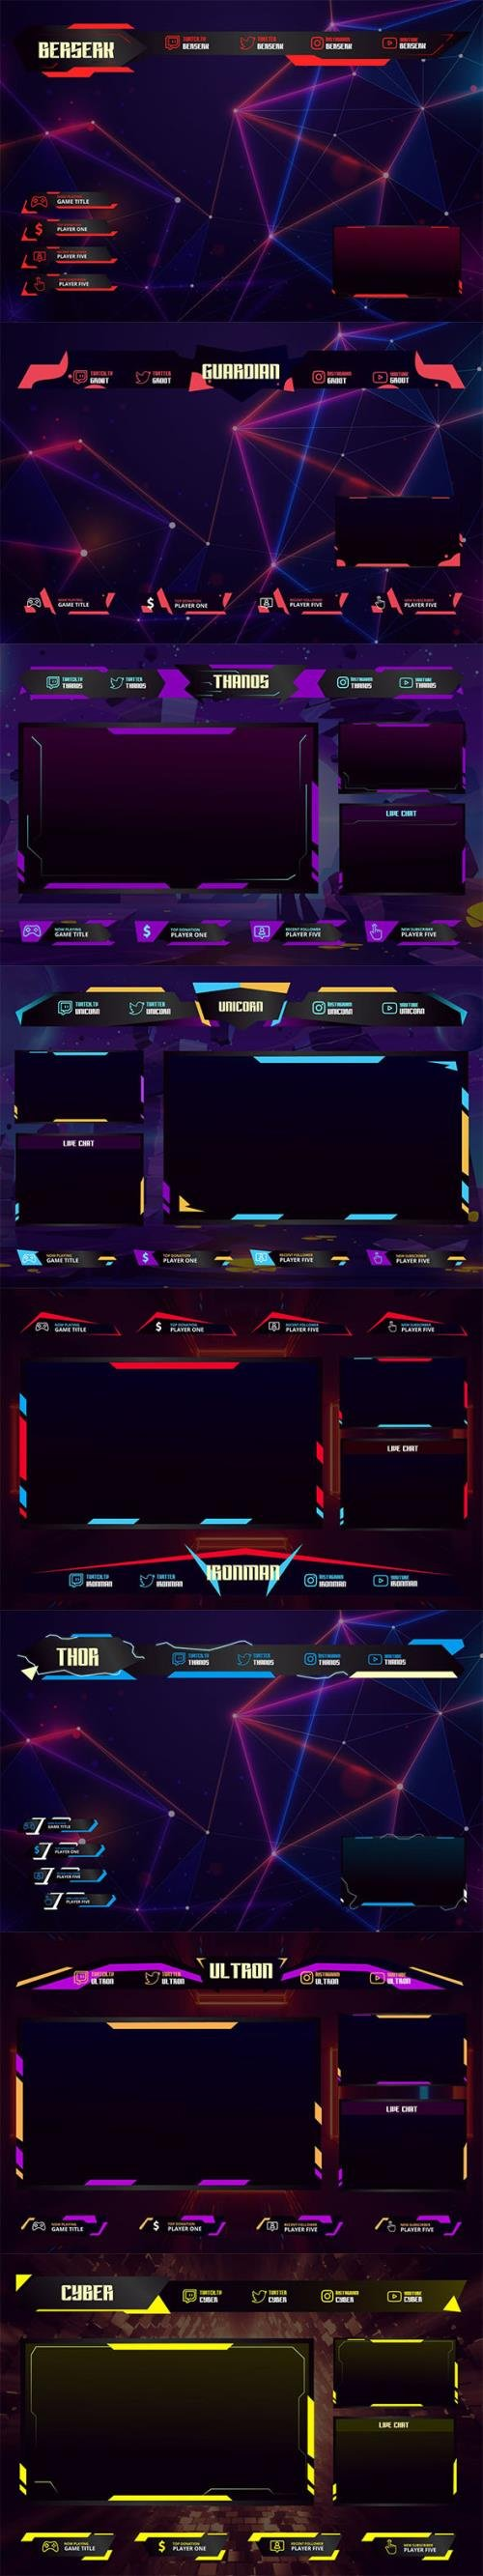 11 Twitch Overlay Templates Bundle